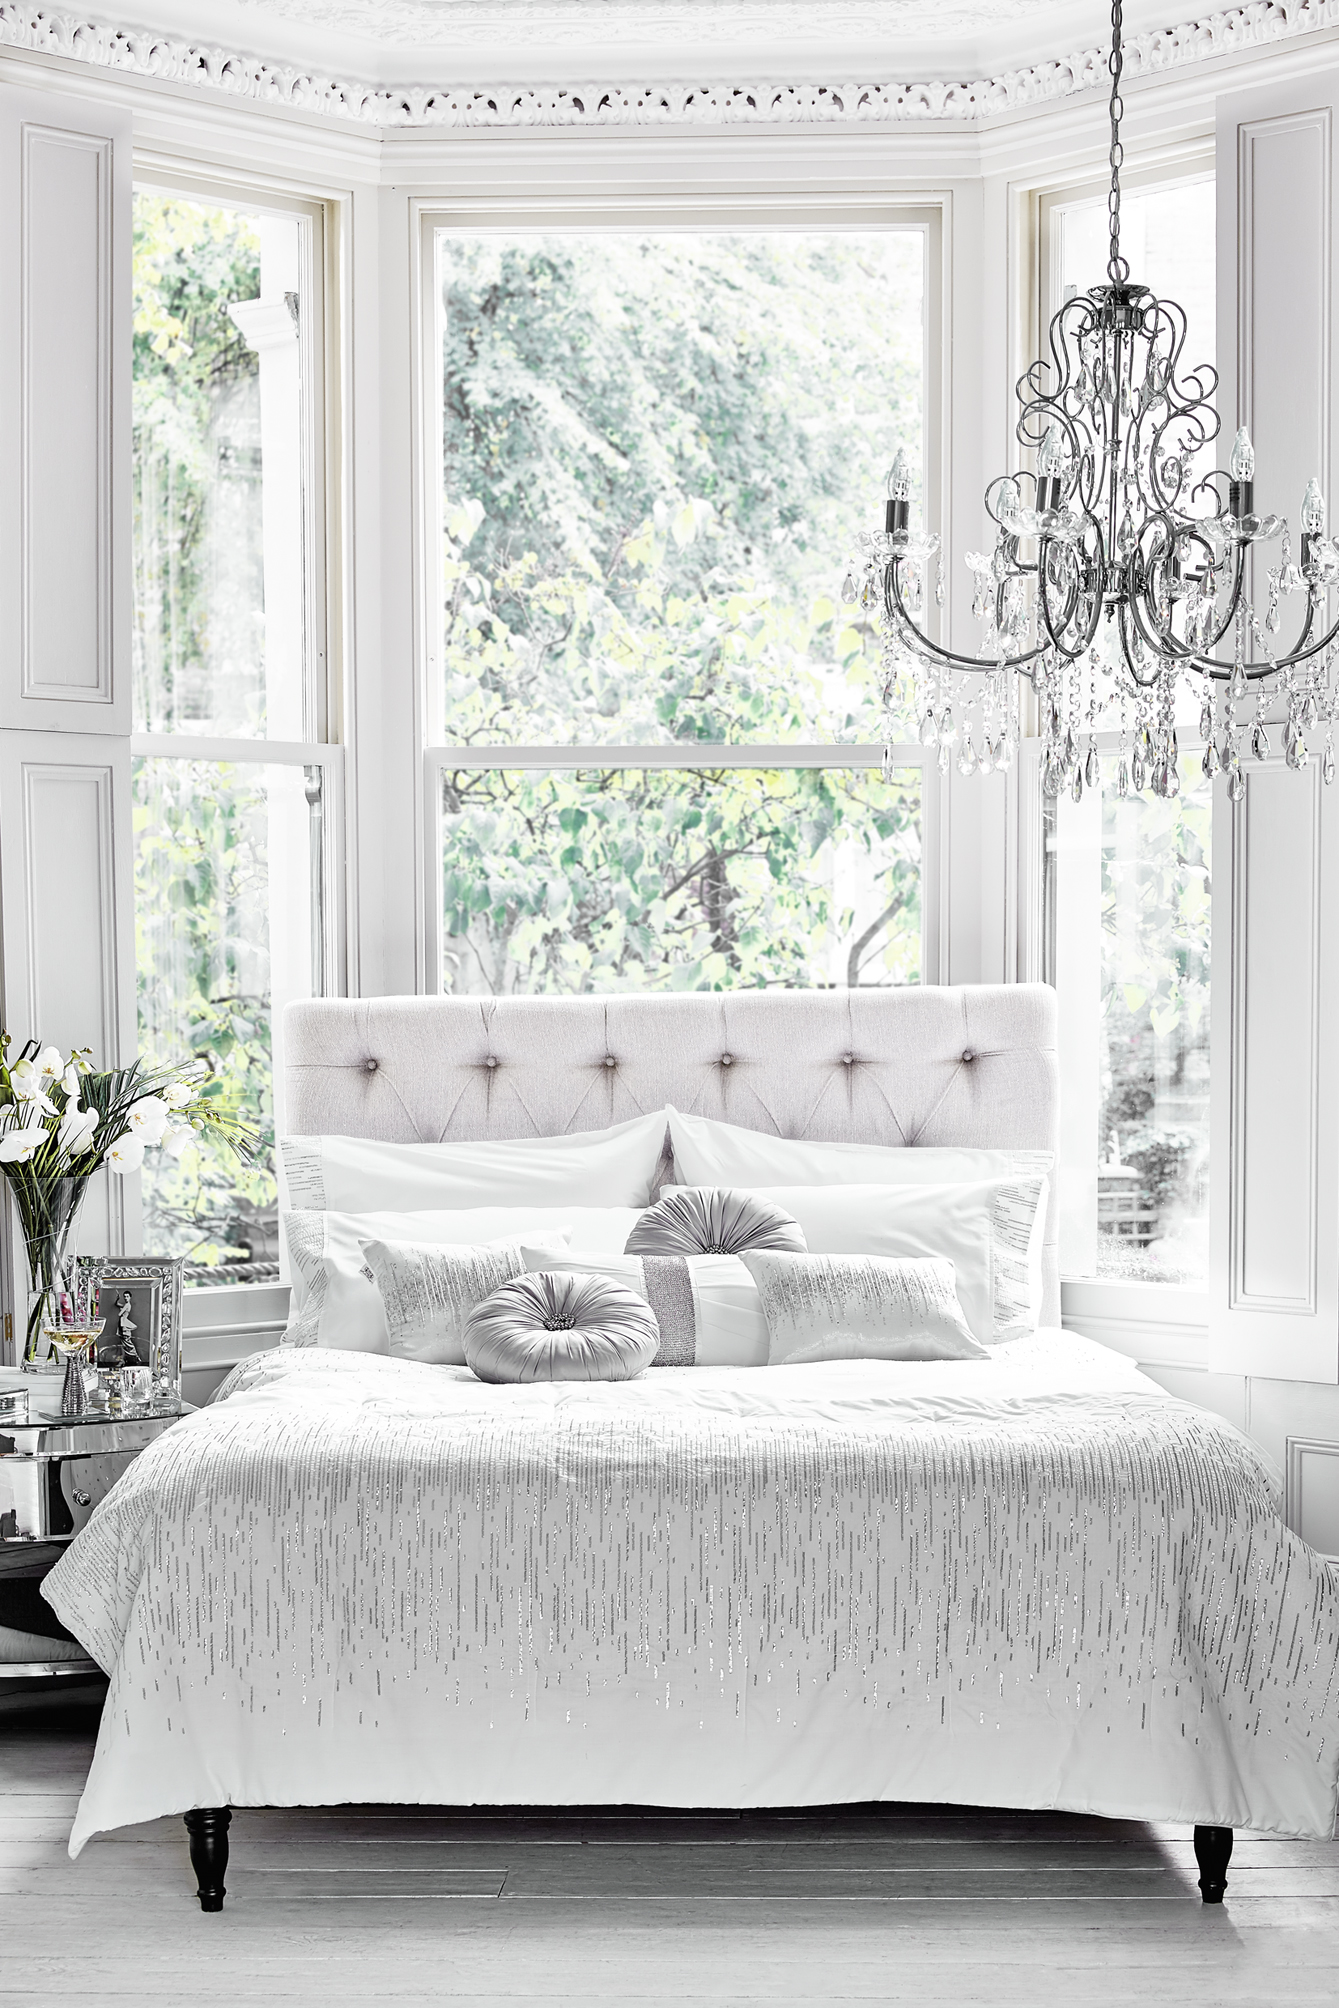 high style for low prices california shutters. Black Bedroom Furniture Sets. Home Design Ideas